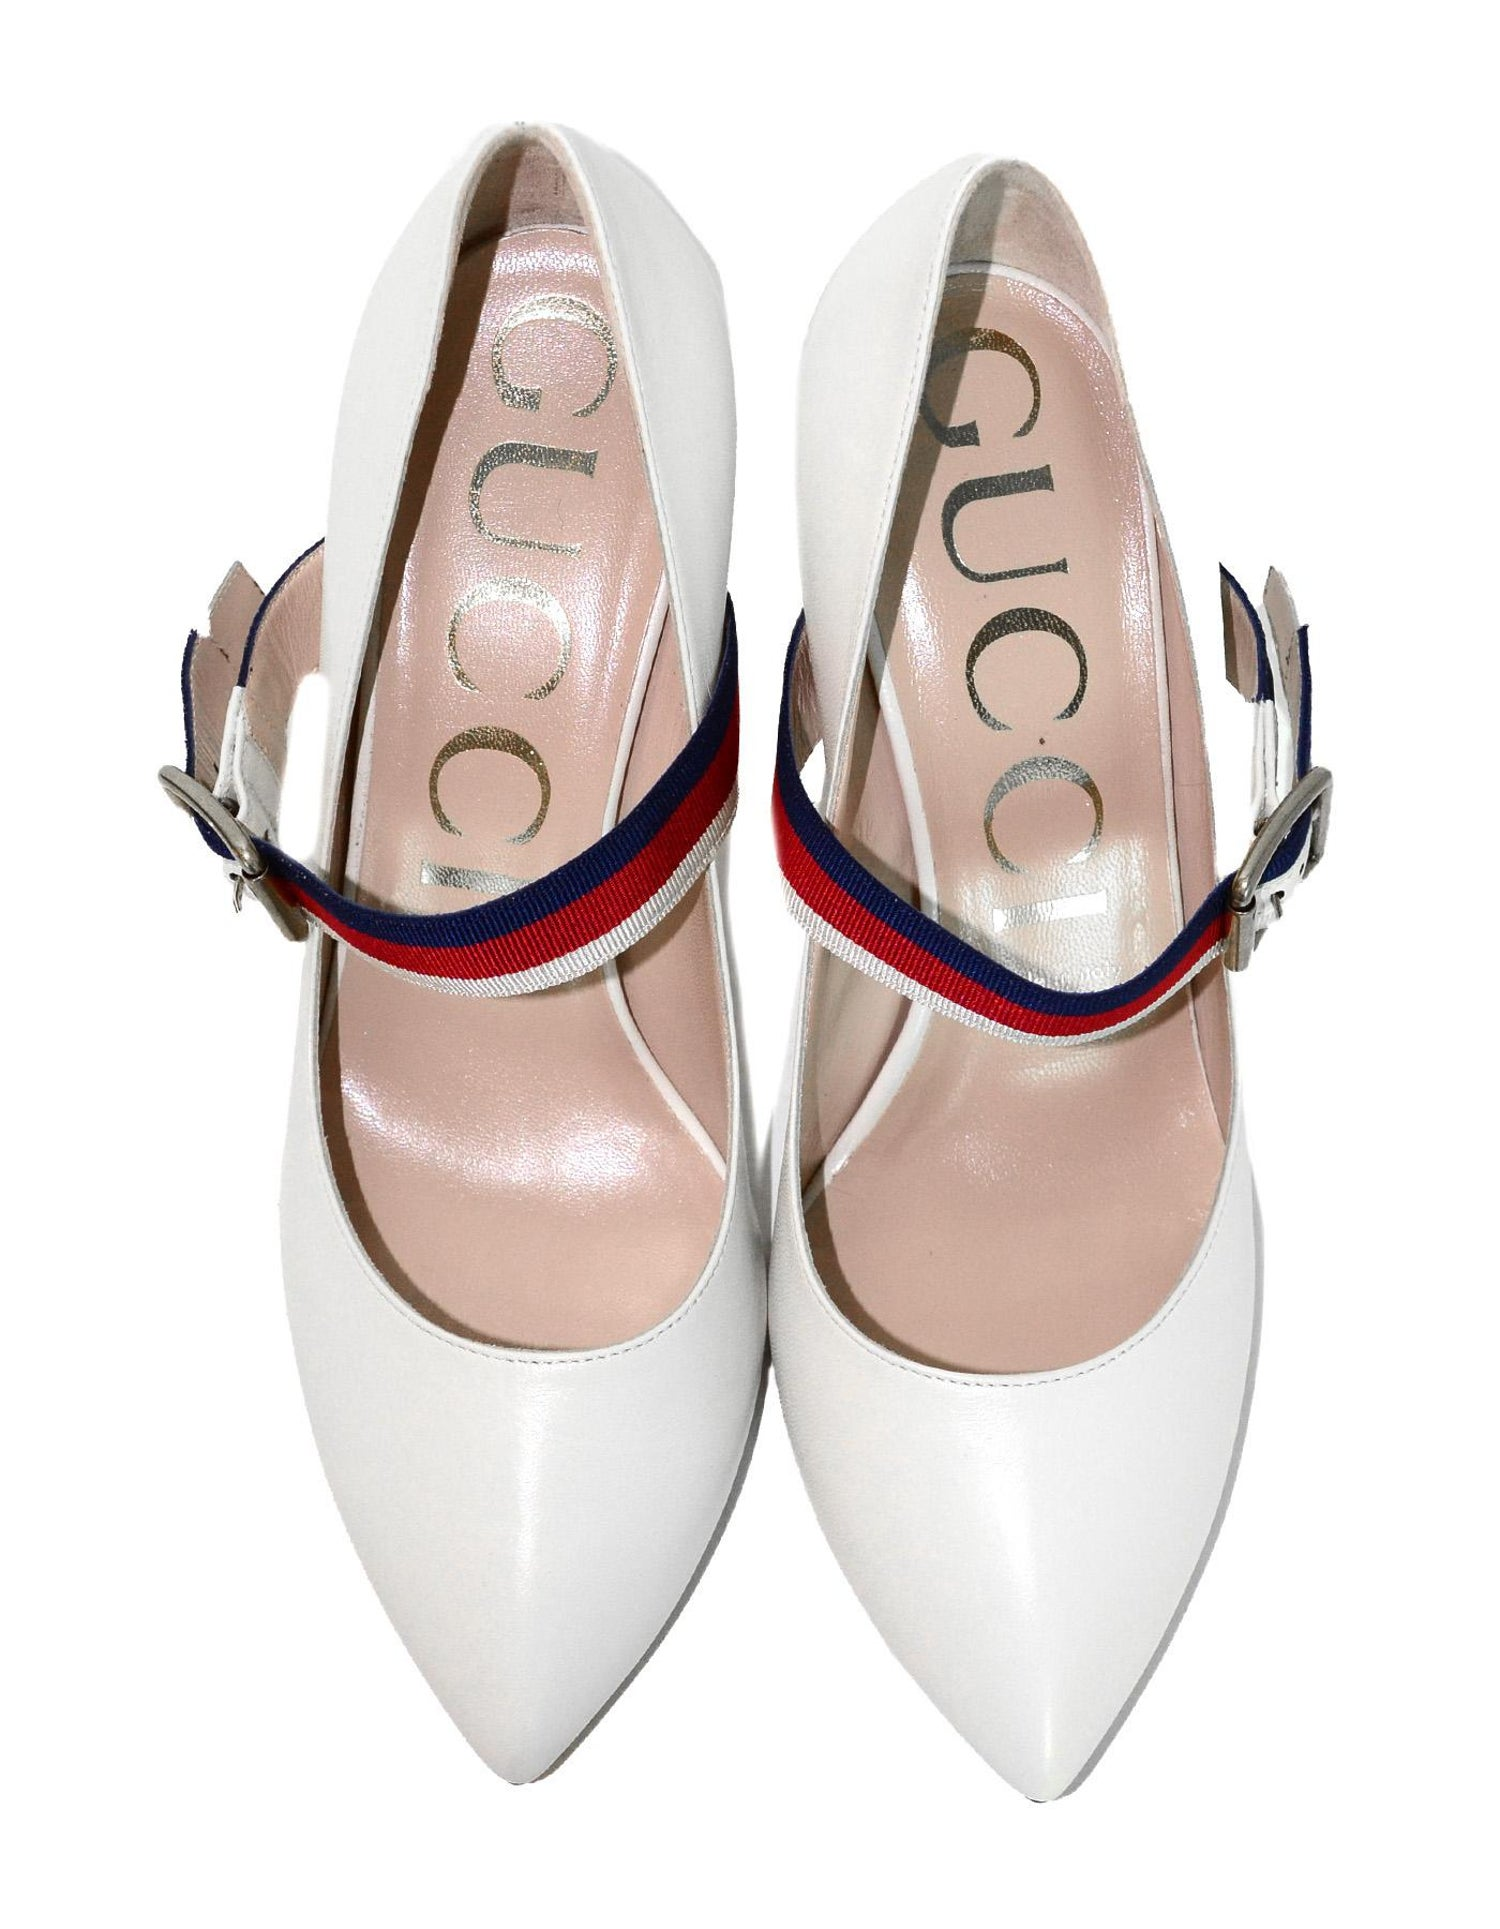 eabf374ca5e Gucci NEW White Leather Sylvie Pumps w. Red Blue Grosgrain-Trimmed Web Sz  37.5 For Sale at 1stdibs